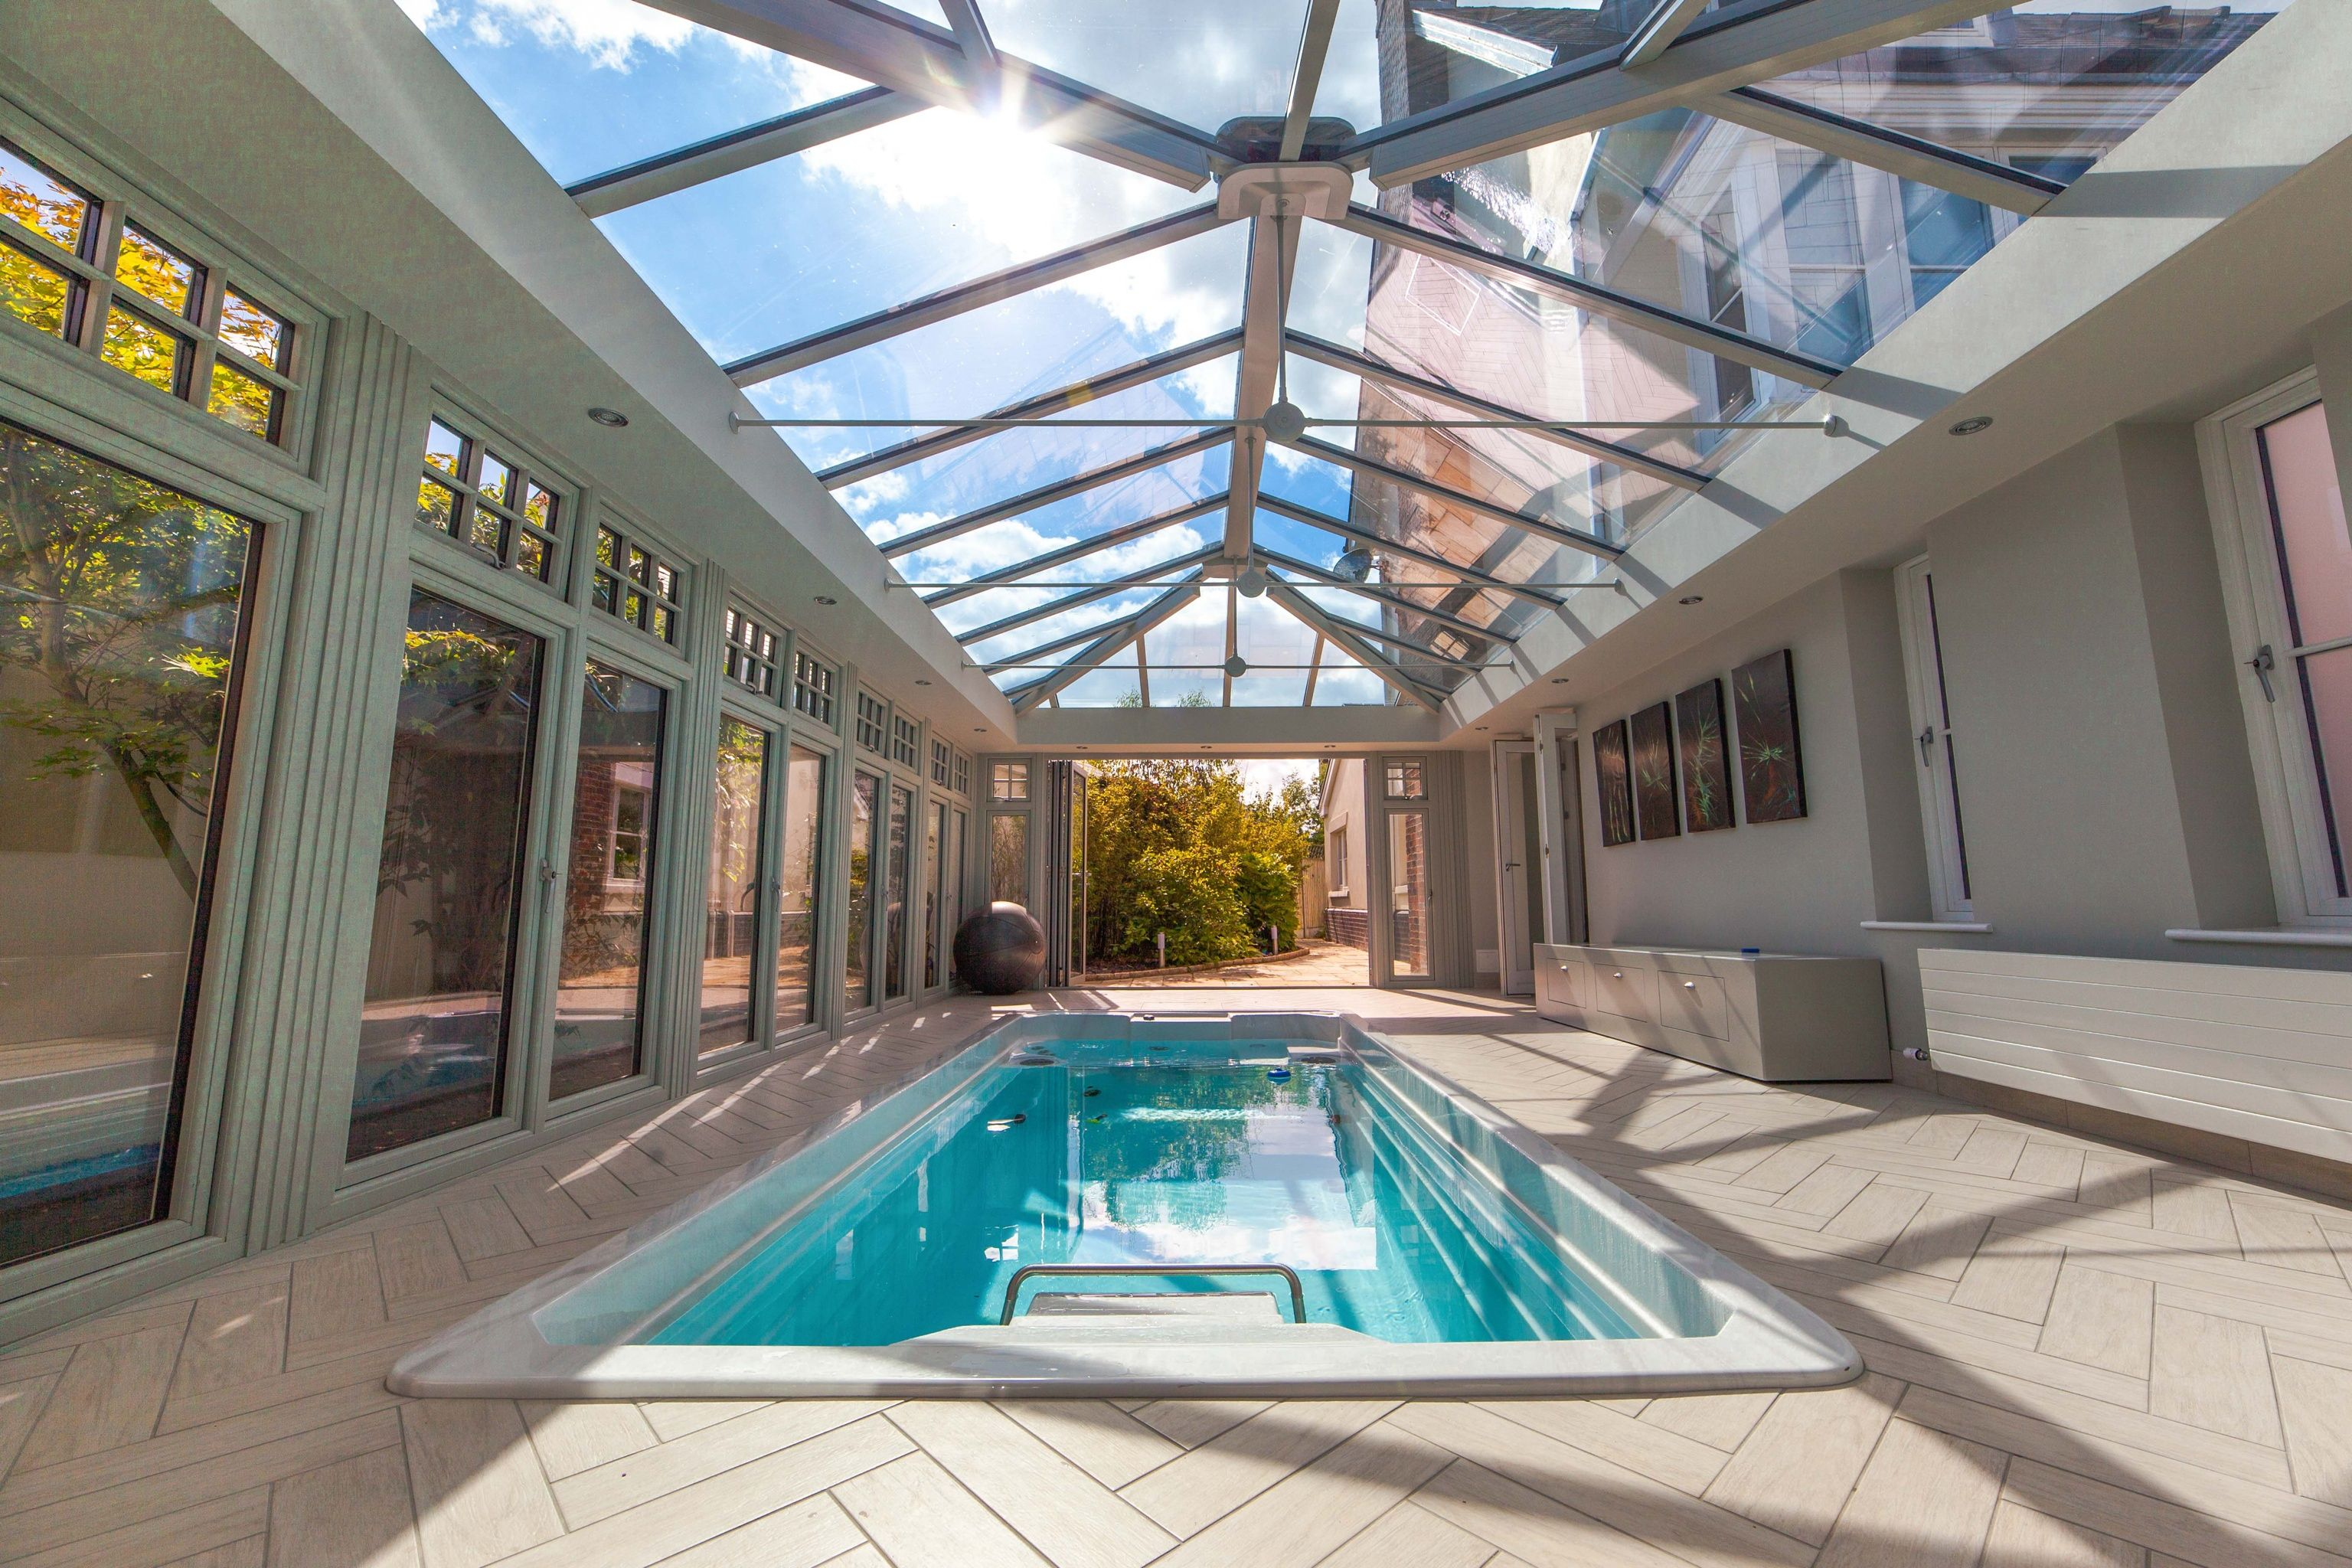 Photo 5 Of 5 Featuring The Endless Pool Swim Spa In A Beautiful Glass Conservatory Build Your